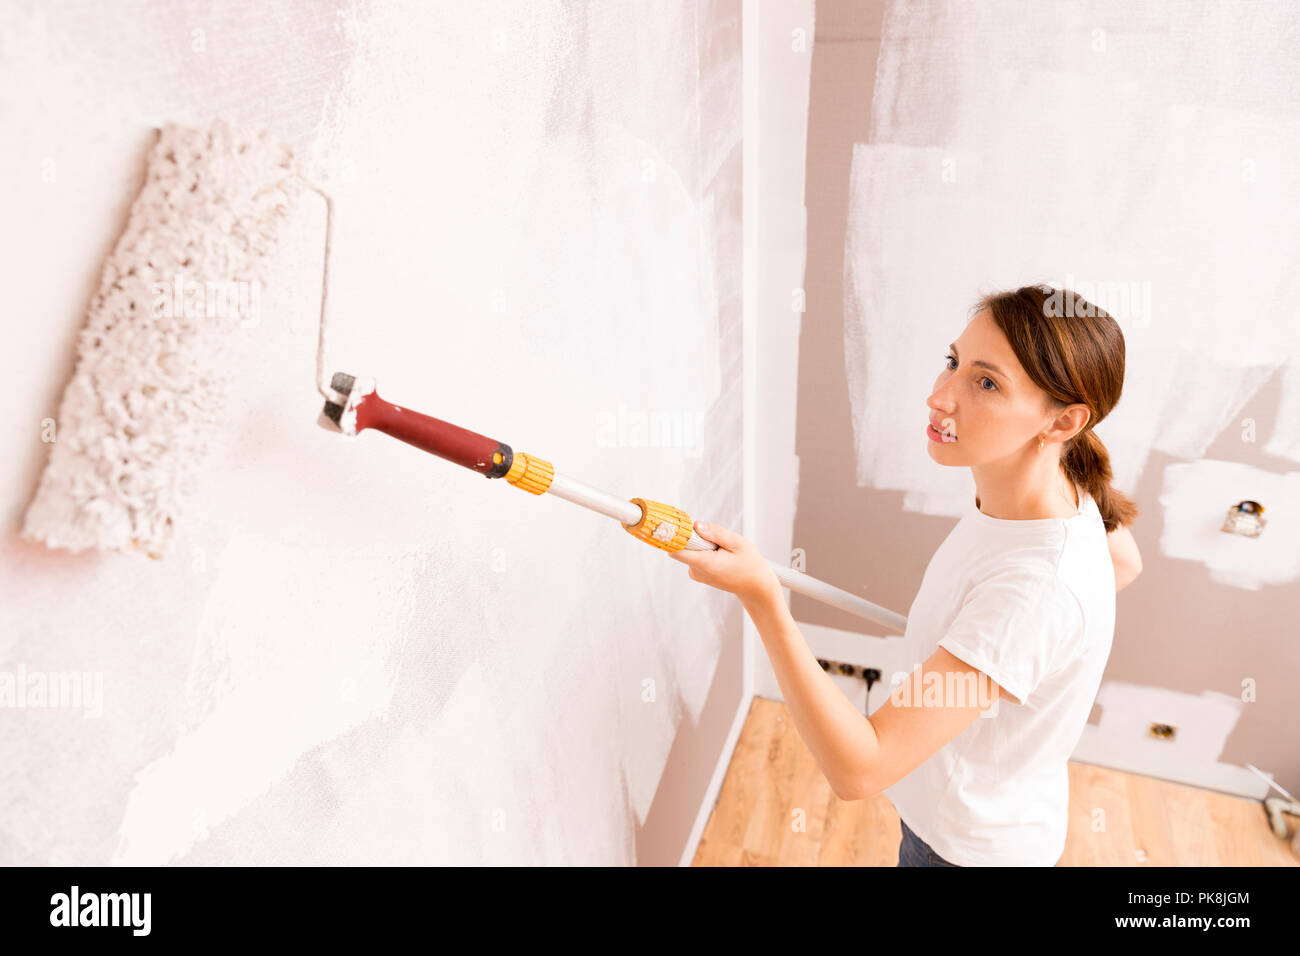 Home improvement. Beautiful woman painting wall with paint roller. - Stock Image